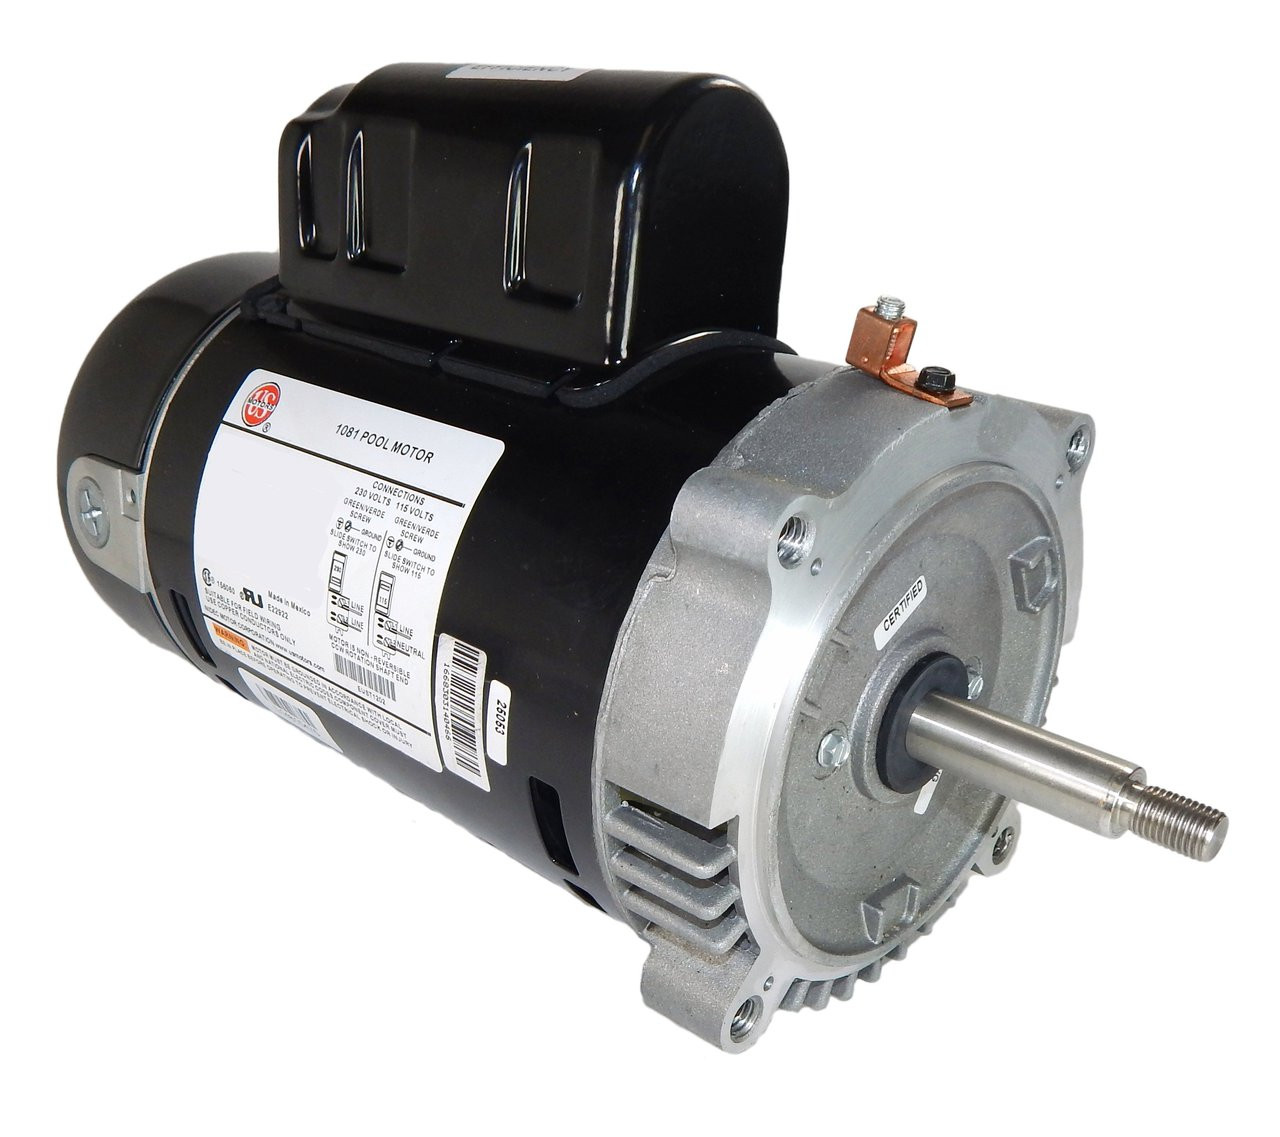 Est1202 2 Hp 3450 Rpm 56j Frame 208 230v Energy Efficient Swimming Pool Motor Us